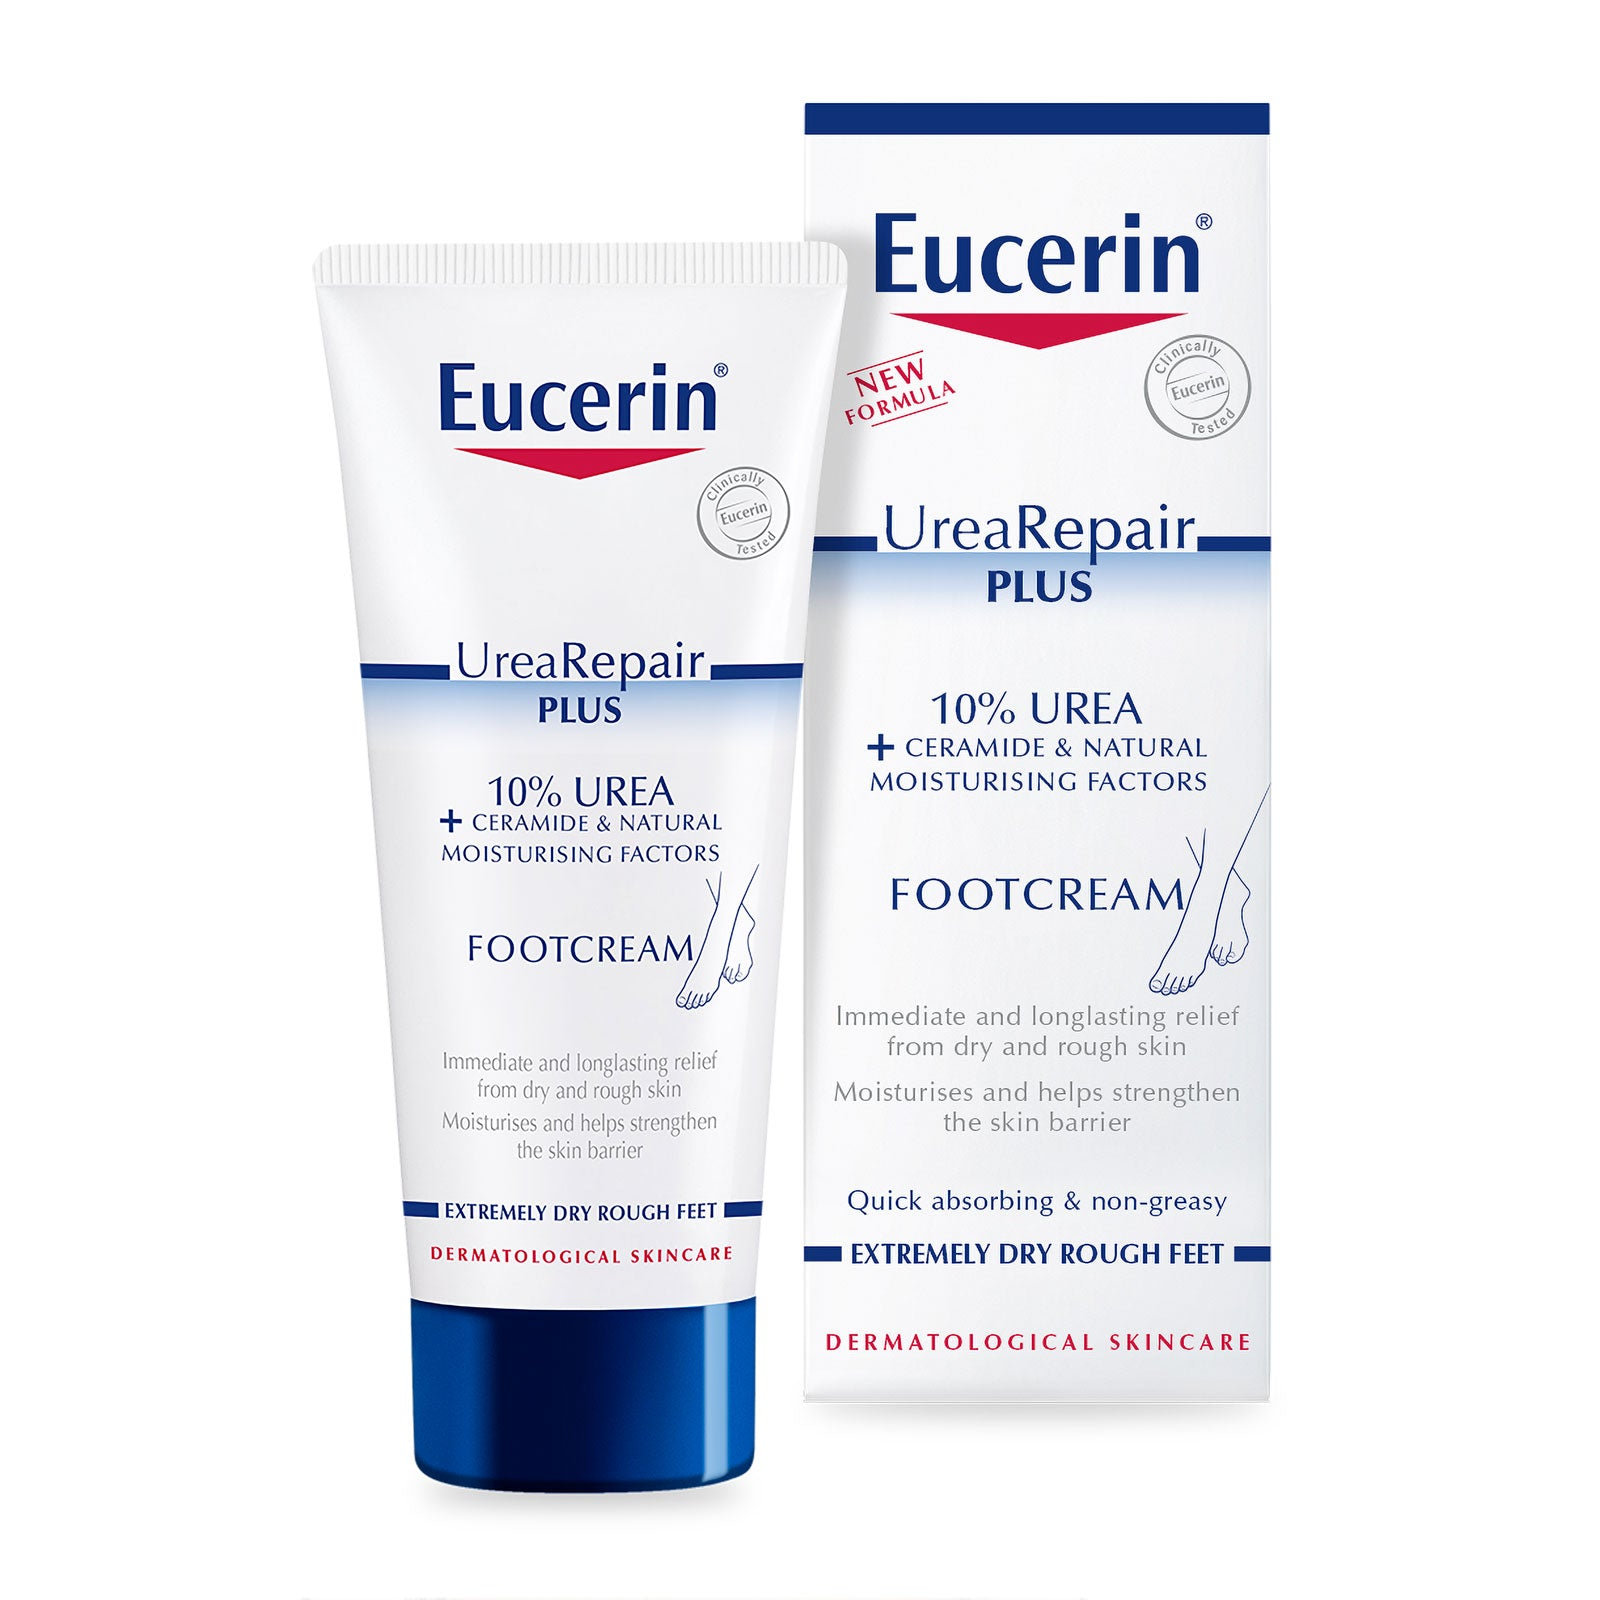 Eucerin Intensive Foot Cream 10% Urea with Lactate 100ml